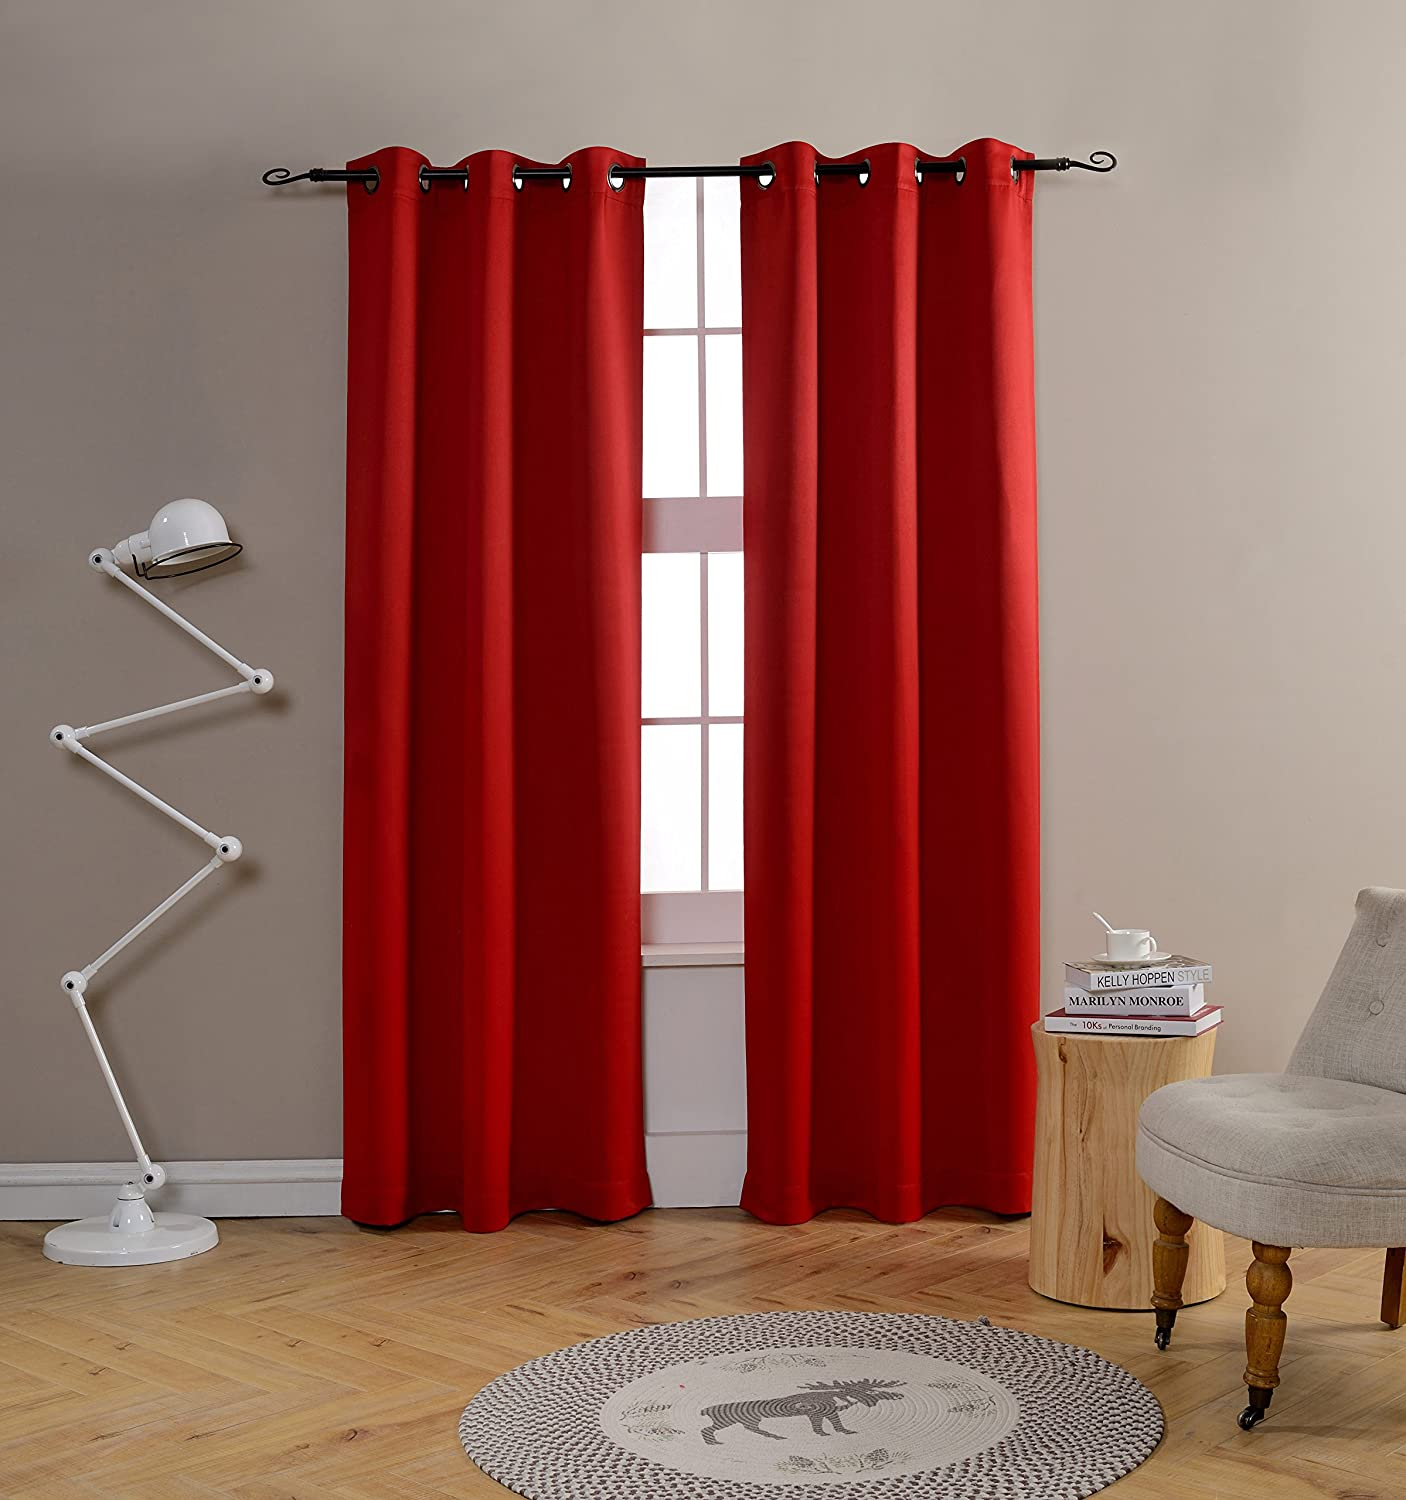 Mysky Home Grommet top Thermal Insulated Window Blackout Curtains